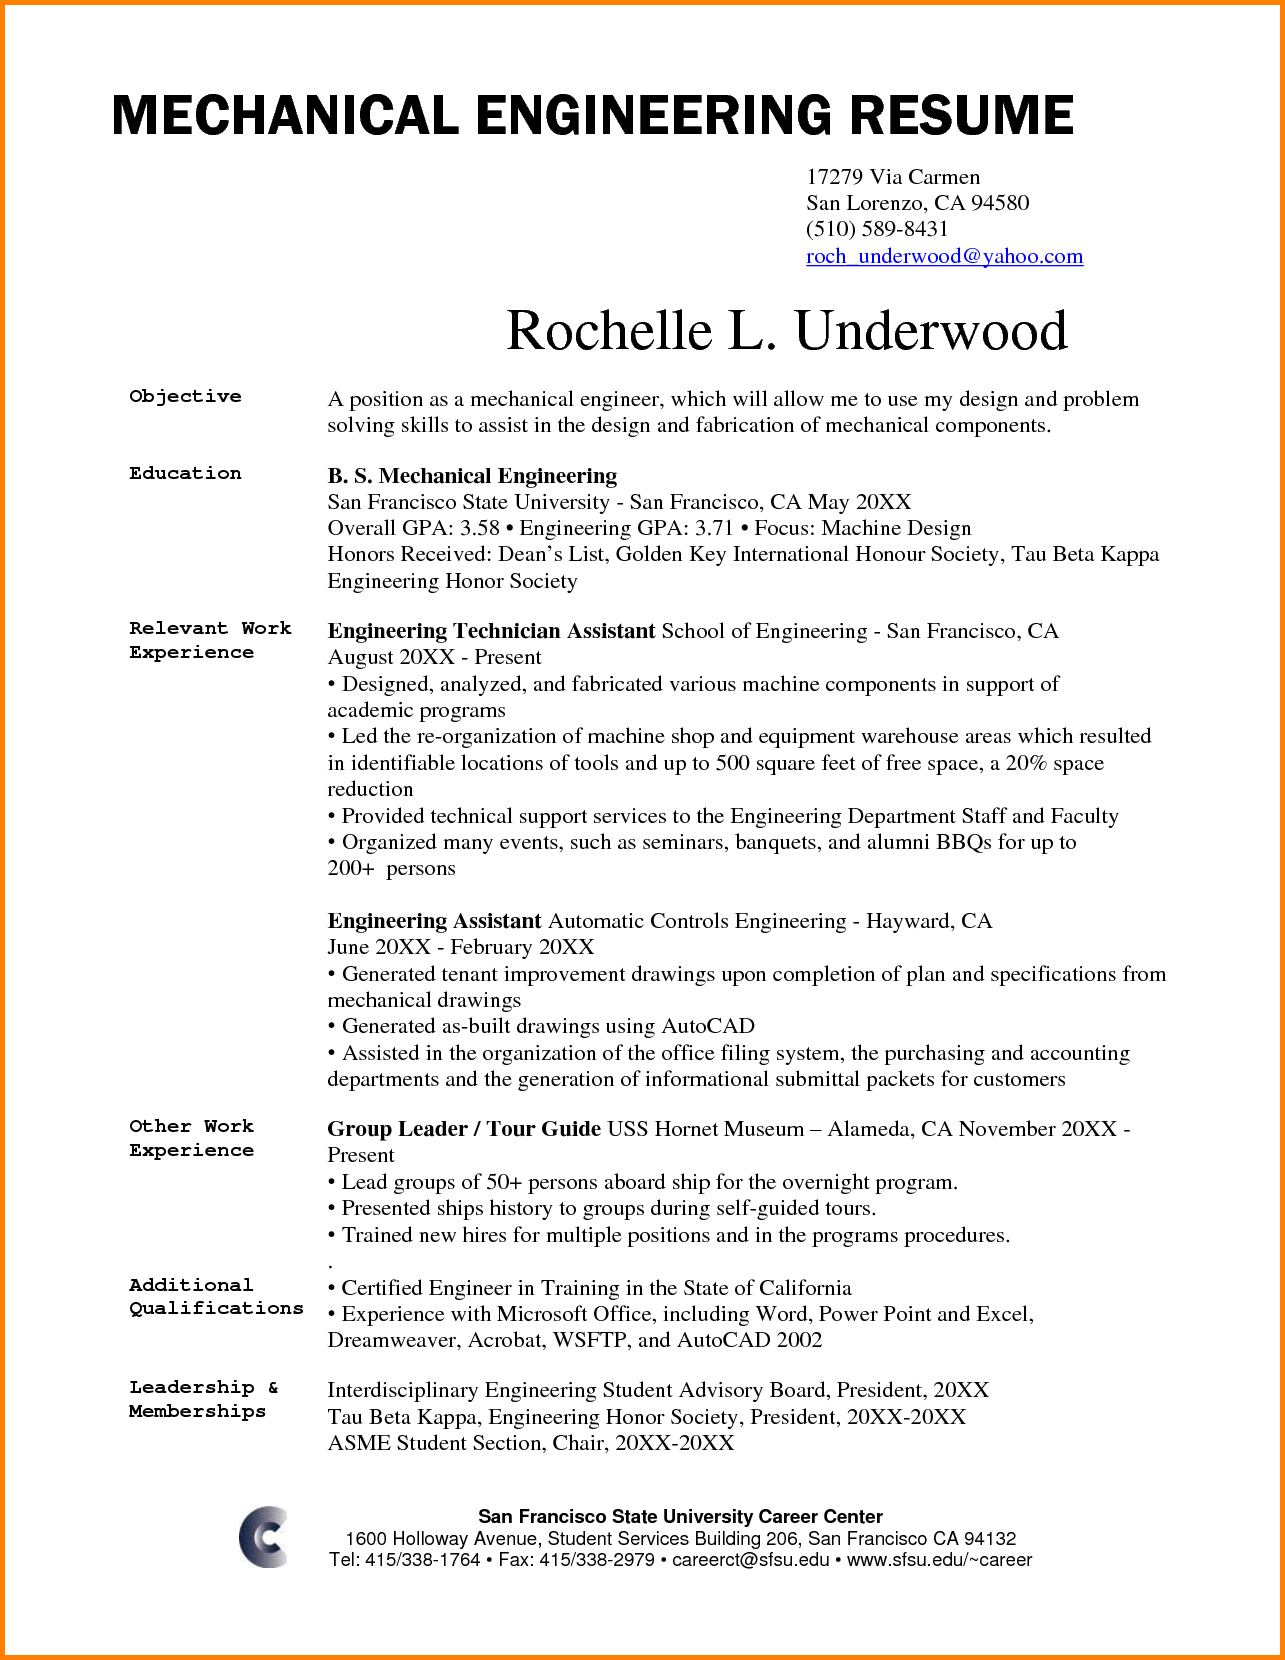 Mechanical Engineering Resume Objective Free Resume Templates